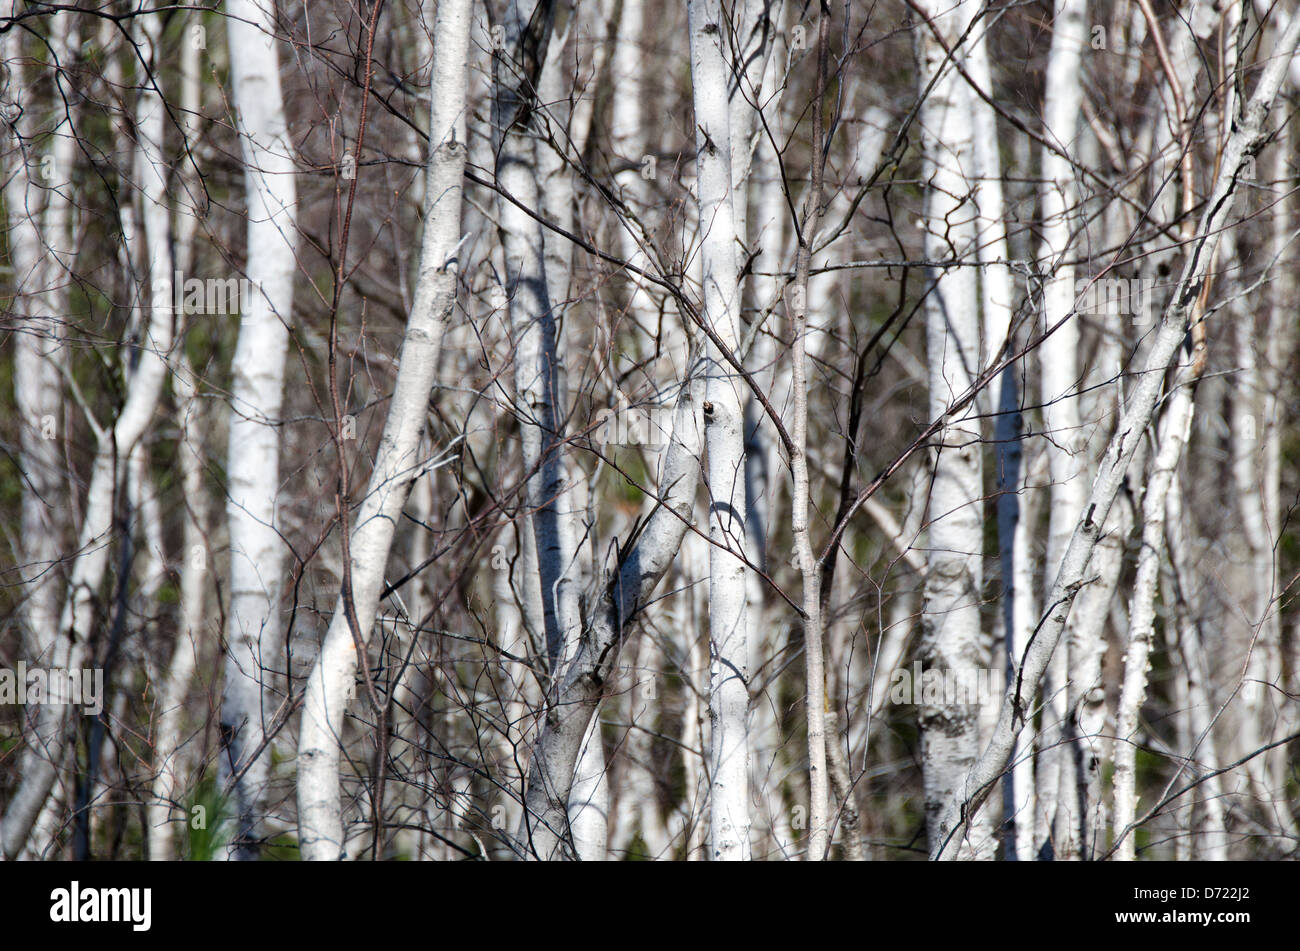 A dense stand of white-barked Paper Birch saplings in Acadia National Park, Maine, is still leafless in early spring. - Stock Image